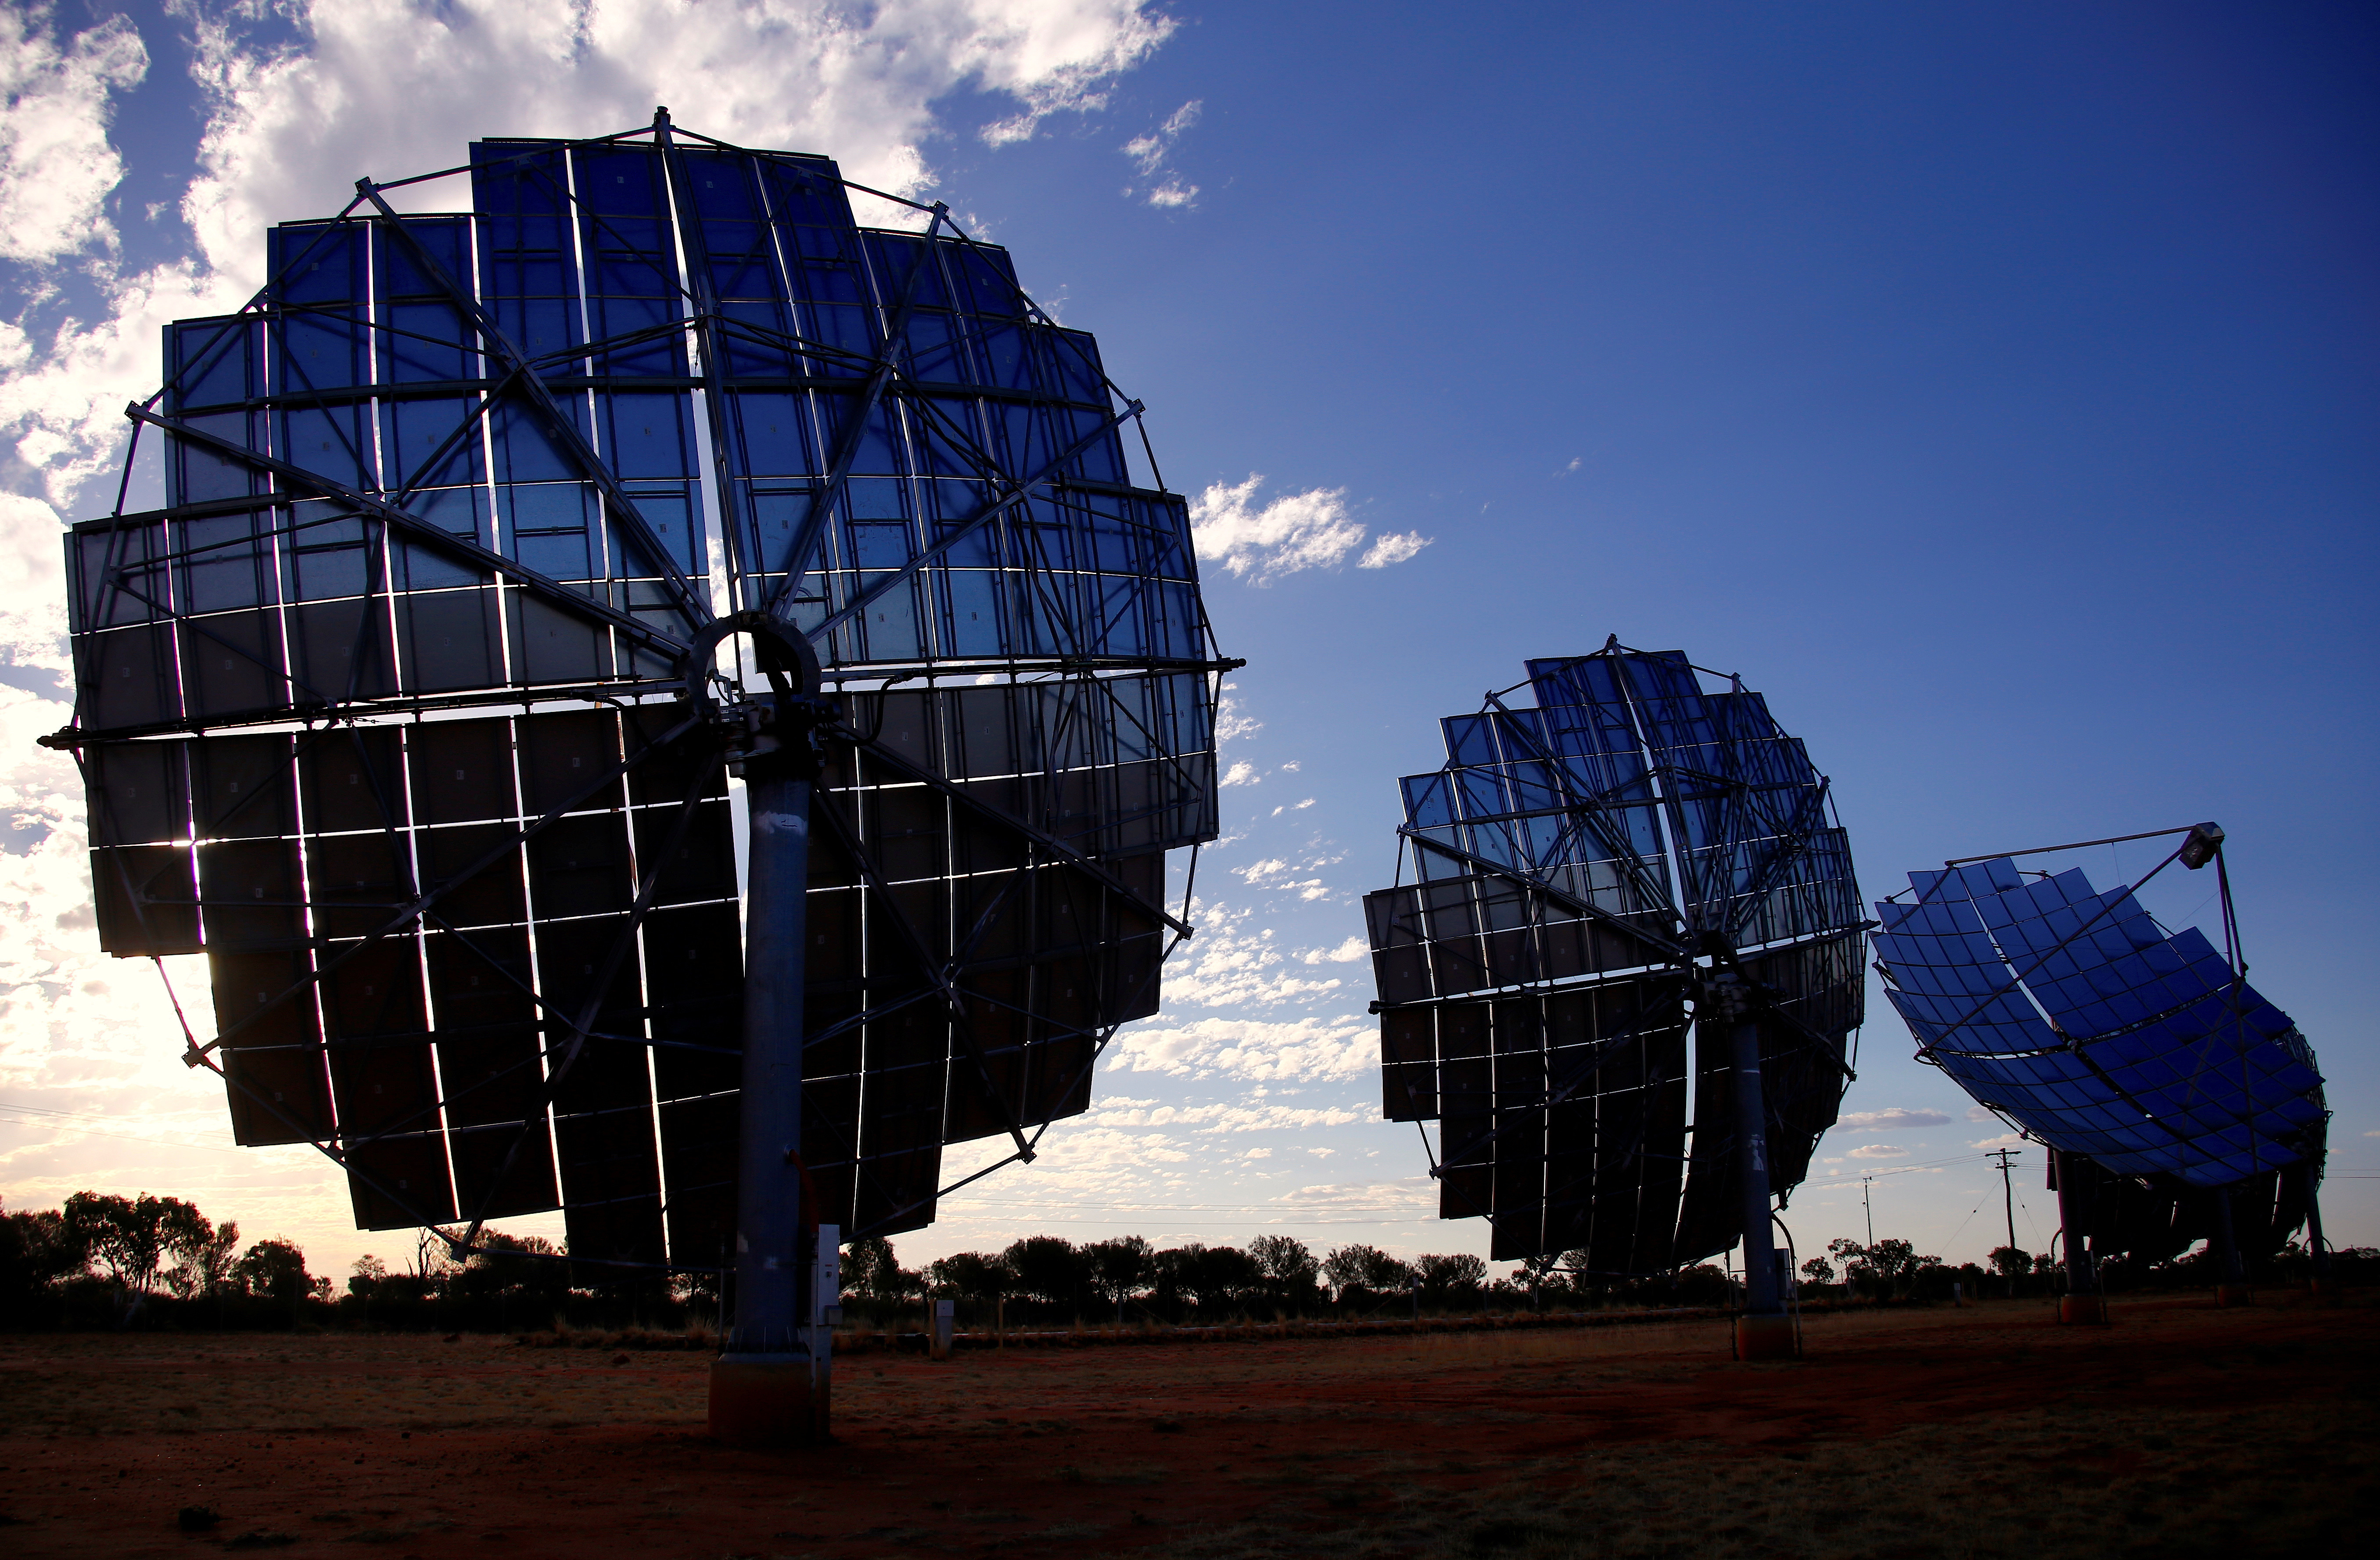 A solar panel array can be seen at the Windorah Solar Farm, which was installed by Ergon Energy